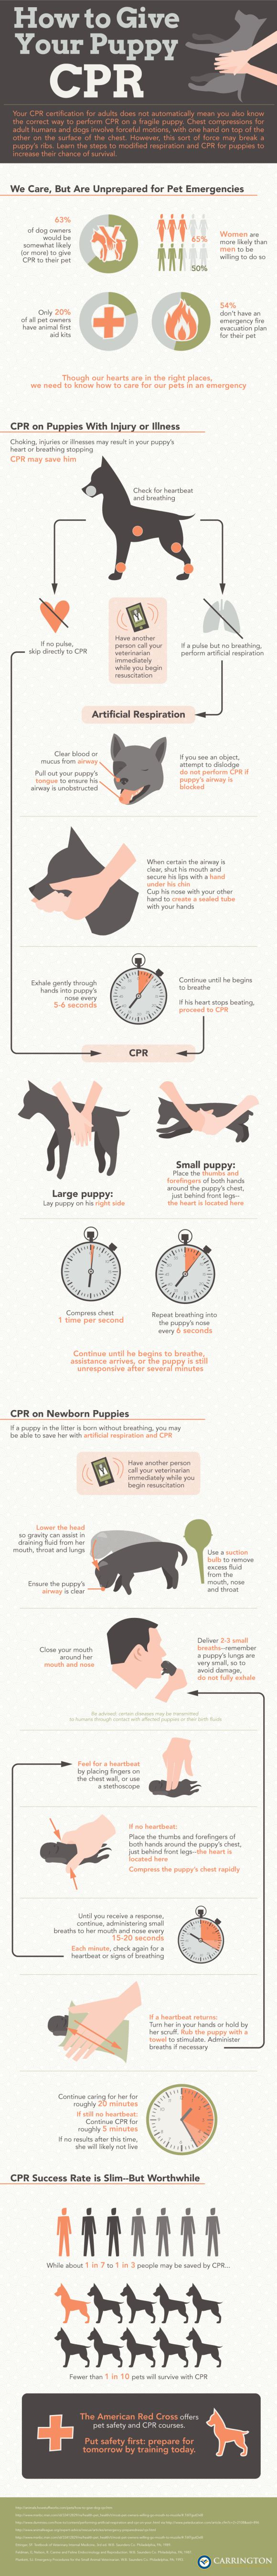 How To Give Your Puppy CPR – Infographic